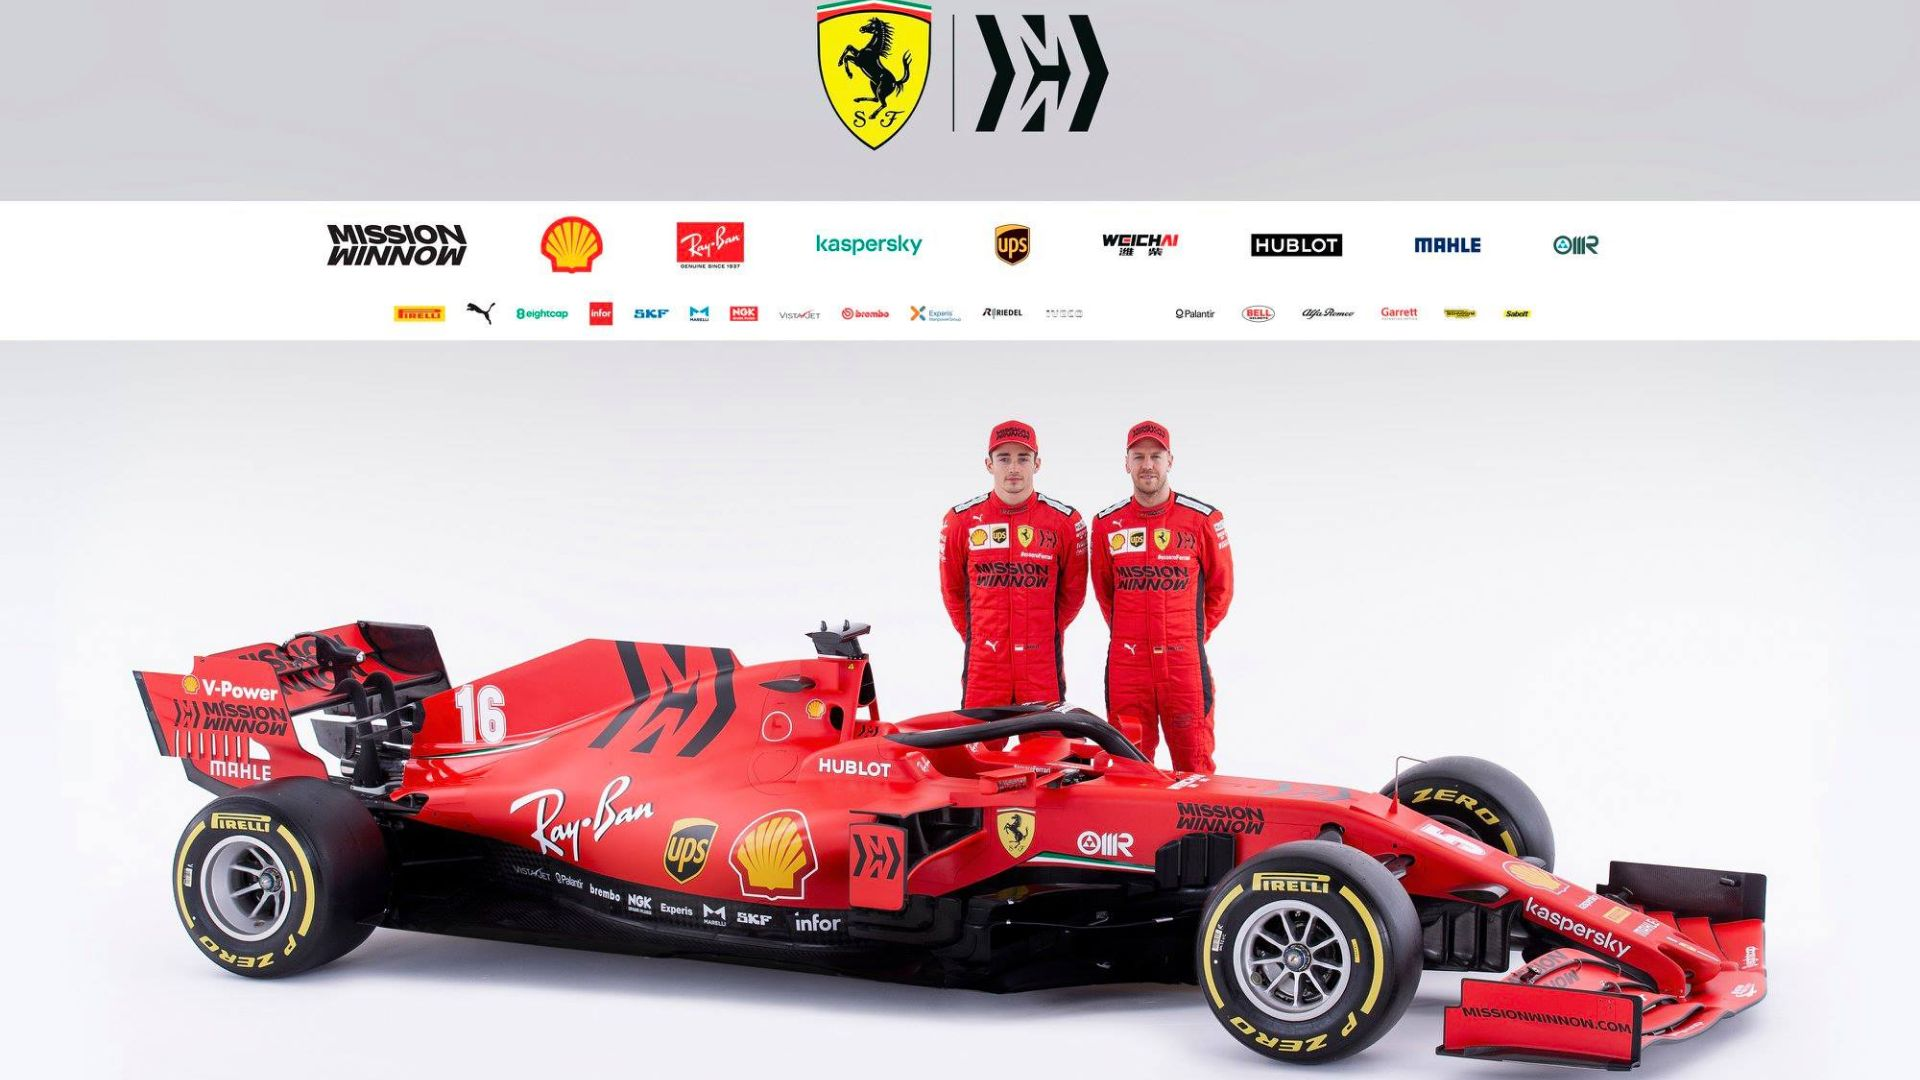 Ferrari faces legal action over advertising